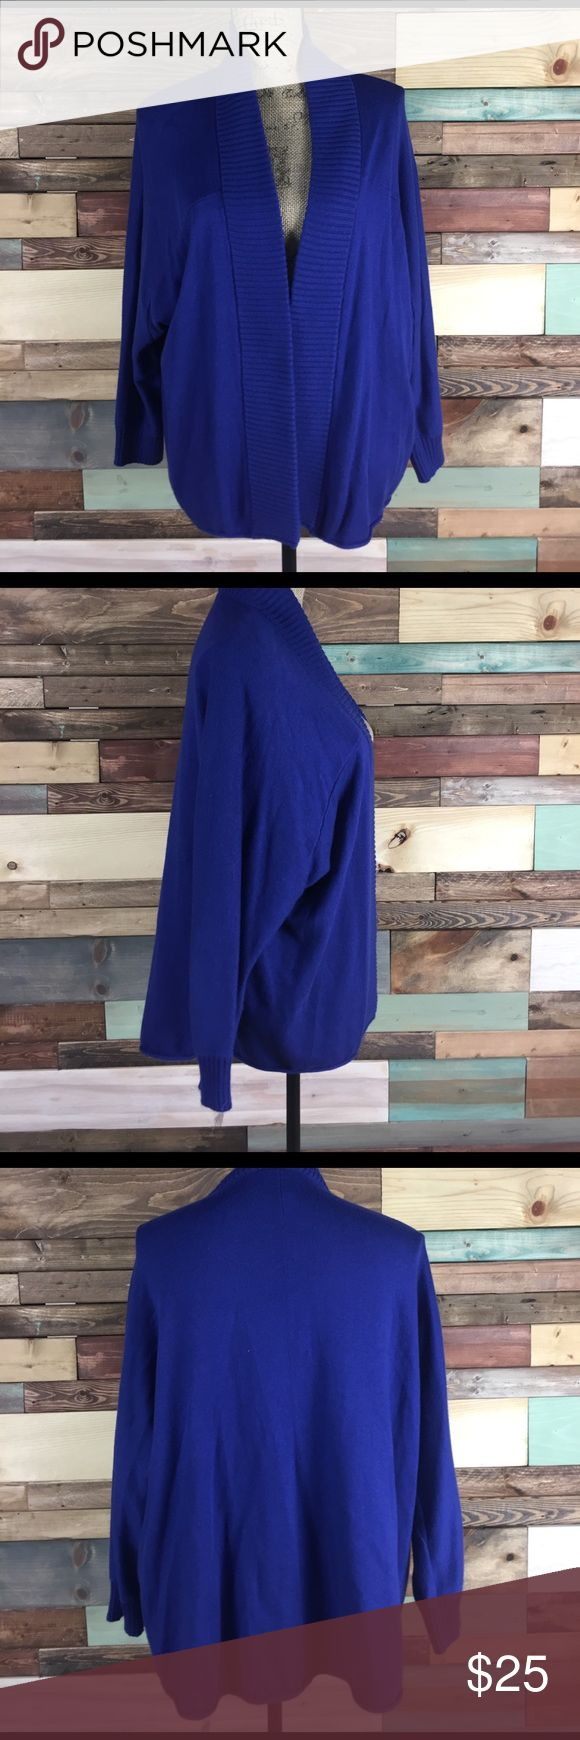 """Chicos Royal Blue Open Knit Cardigan - Sz L Chicos Royal Blue Open Knit Cardigan - Sz L// chicos Sz 2 = Large/12. Length: 26"""" // batwing sleeves, 3/4 length. Chico's Sweaters Cardigans"""